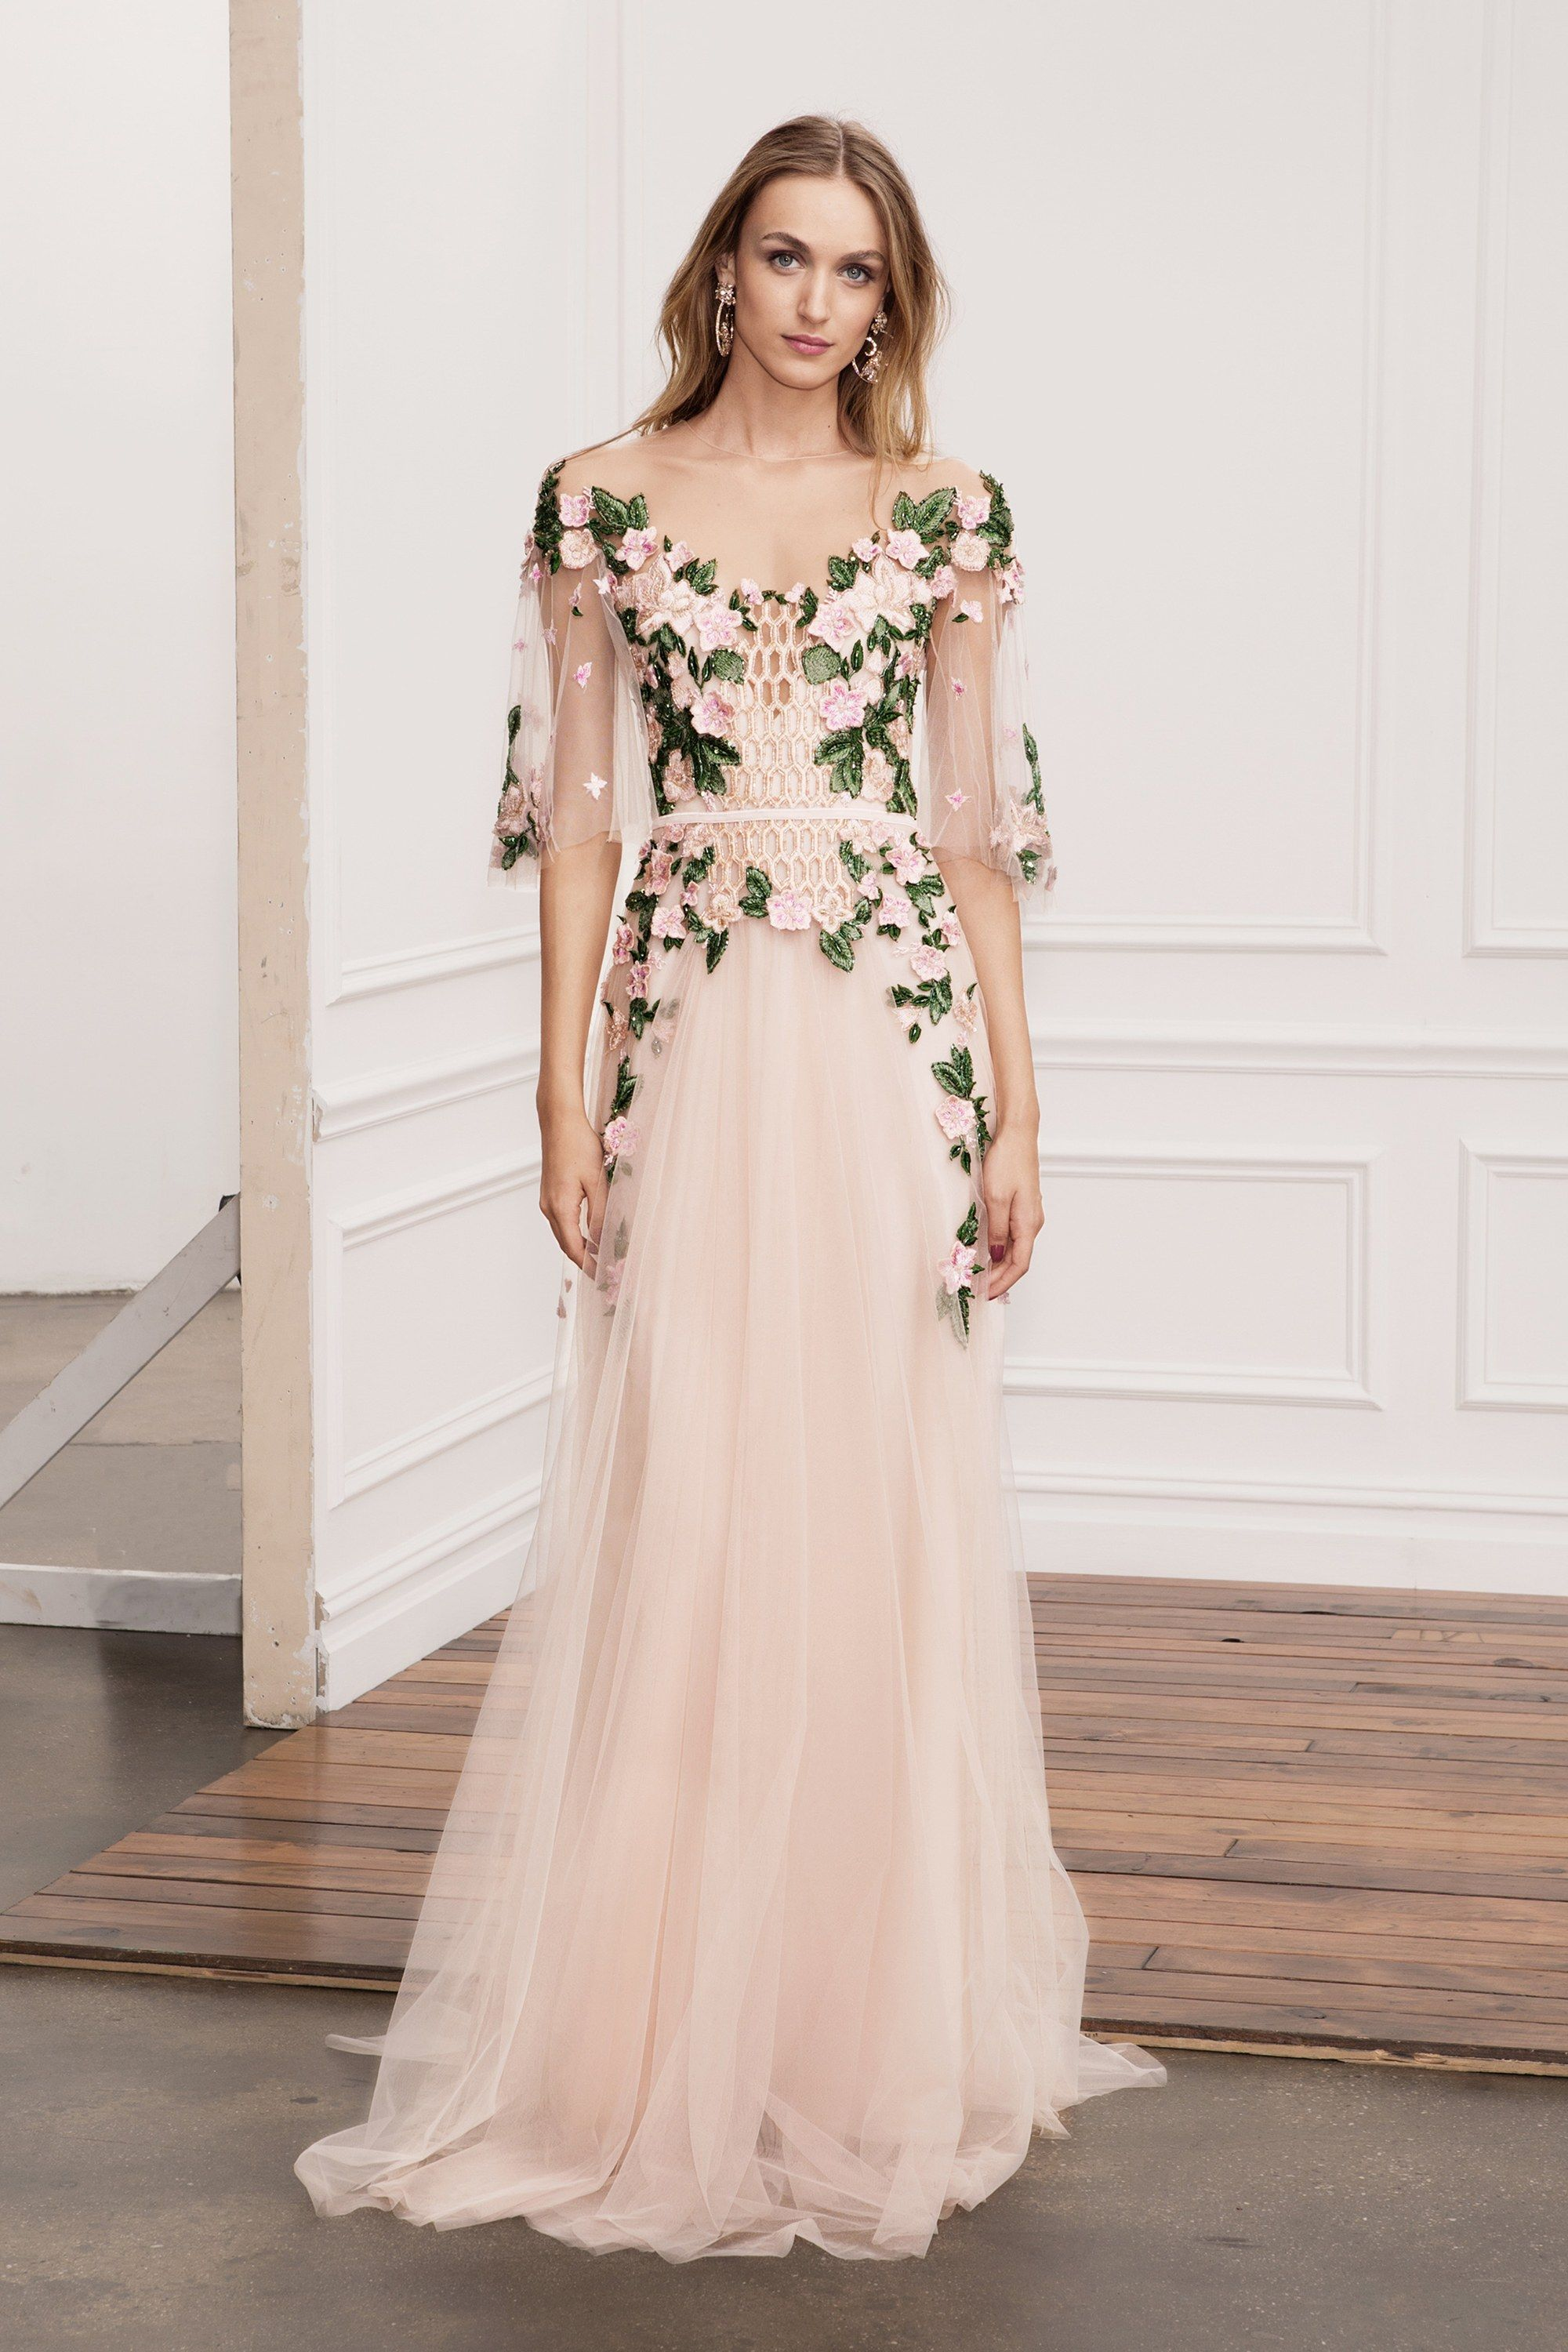 cfe3033043 Marchesa Notte Spring 2018 Ready-to-Wear Fashion Show | Marchesa ...